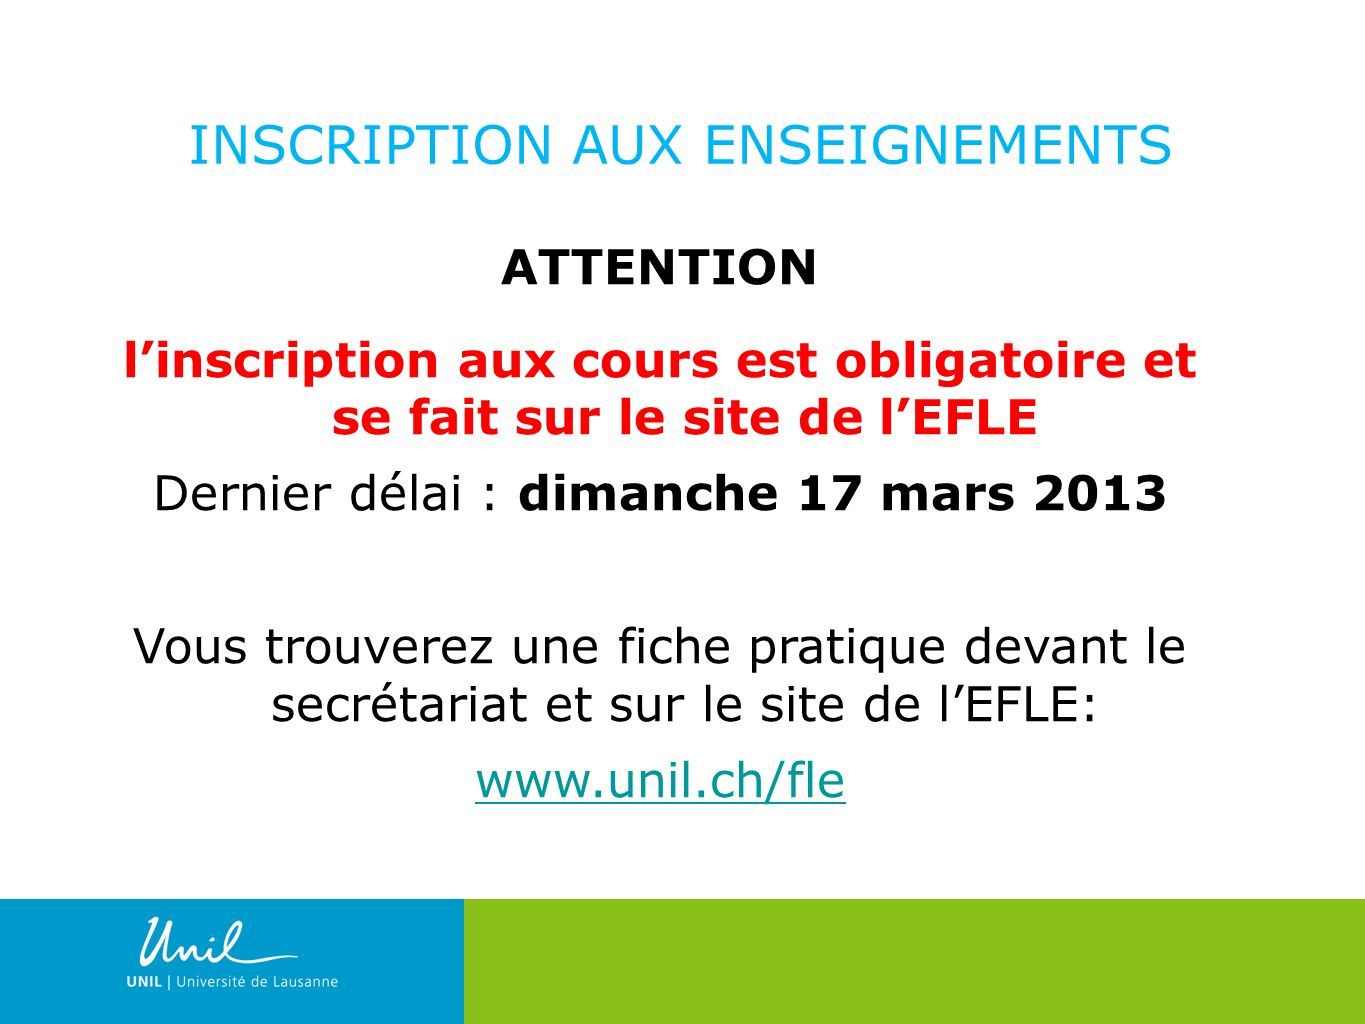 INSCRIPTION AUX ENSEIGNEMENTS